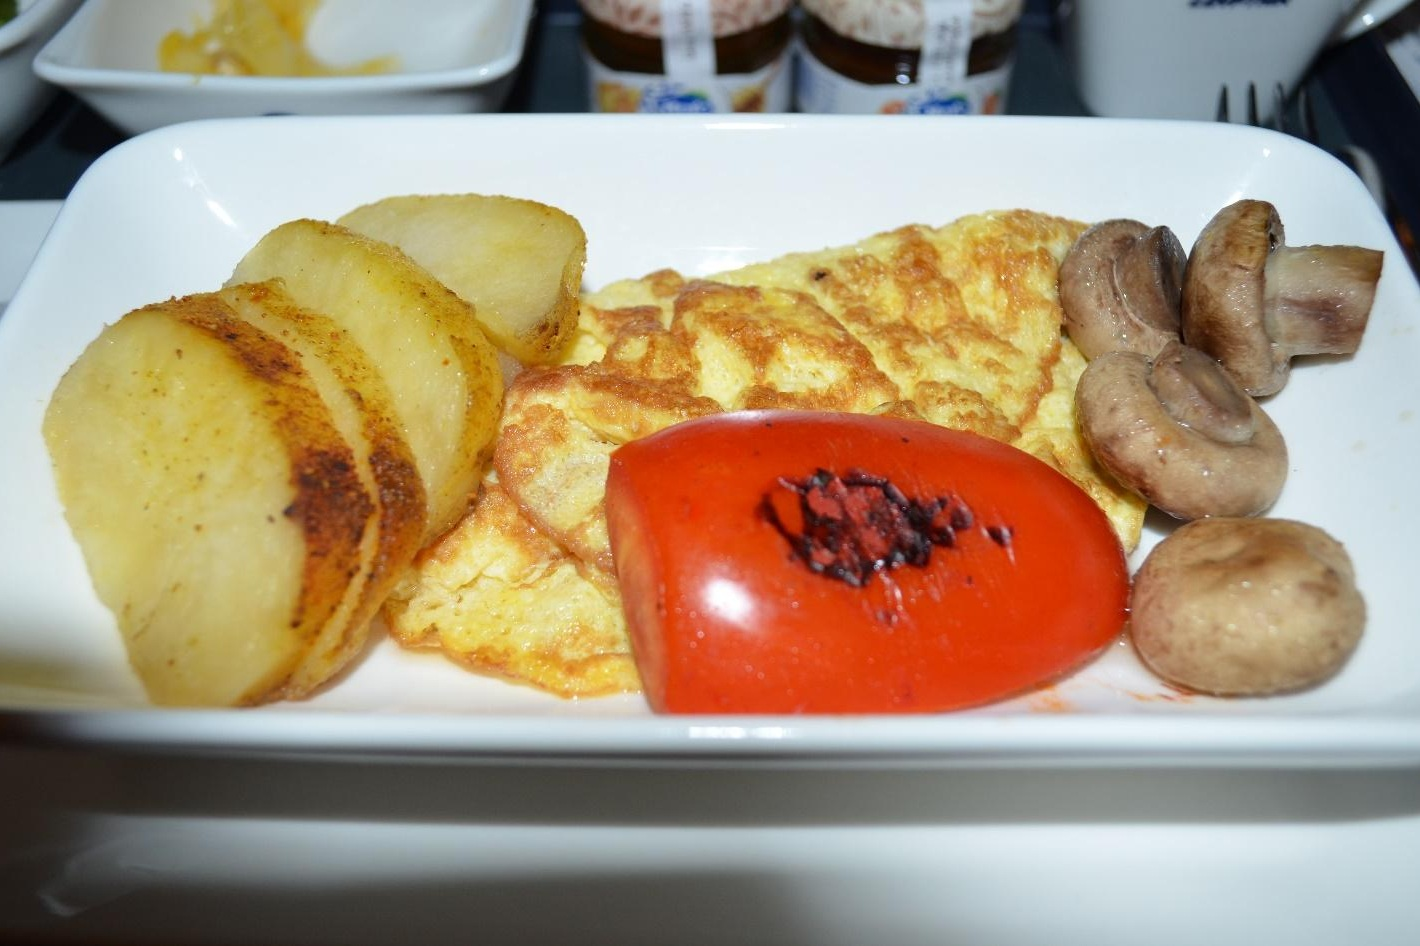 EgyptAir 787 business class – Omelette with mushroom and potato